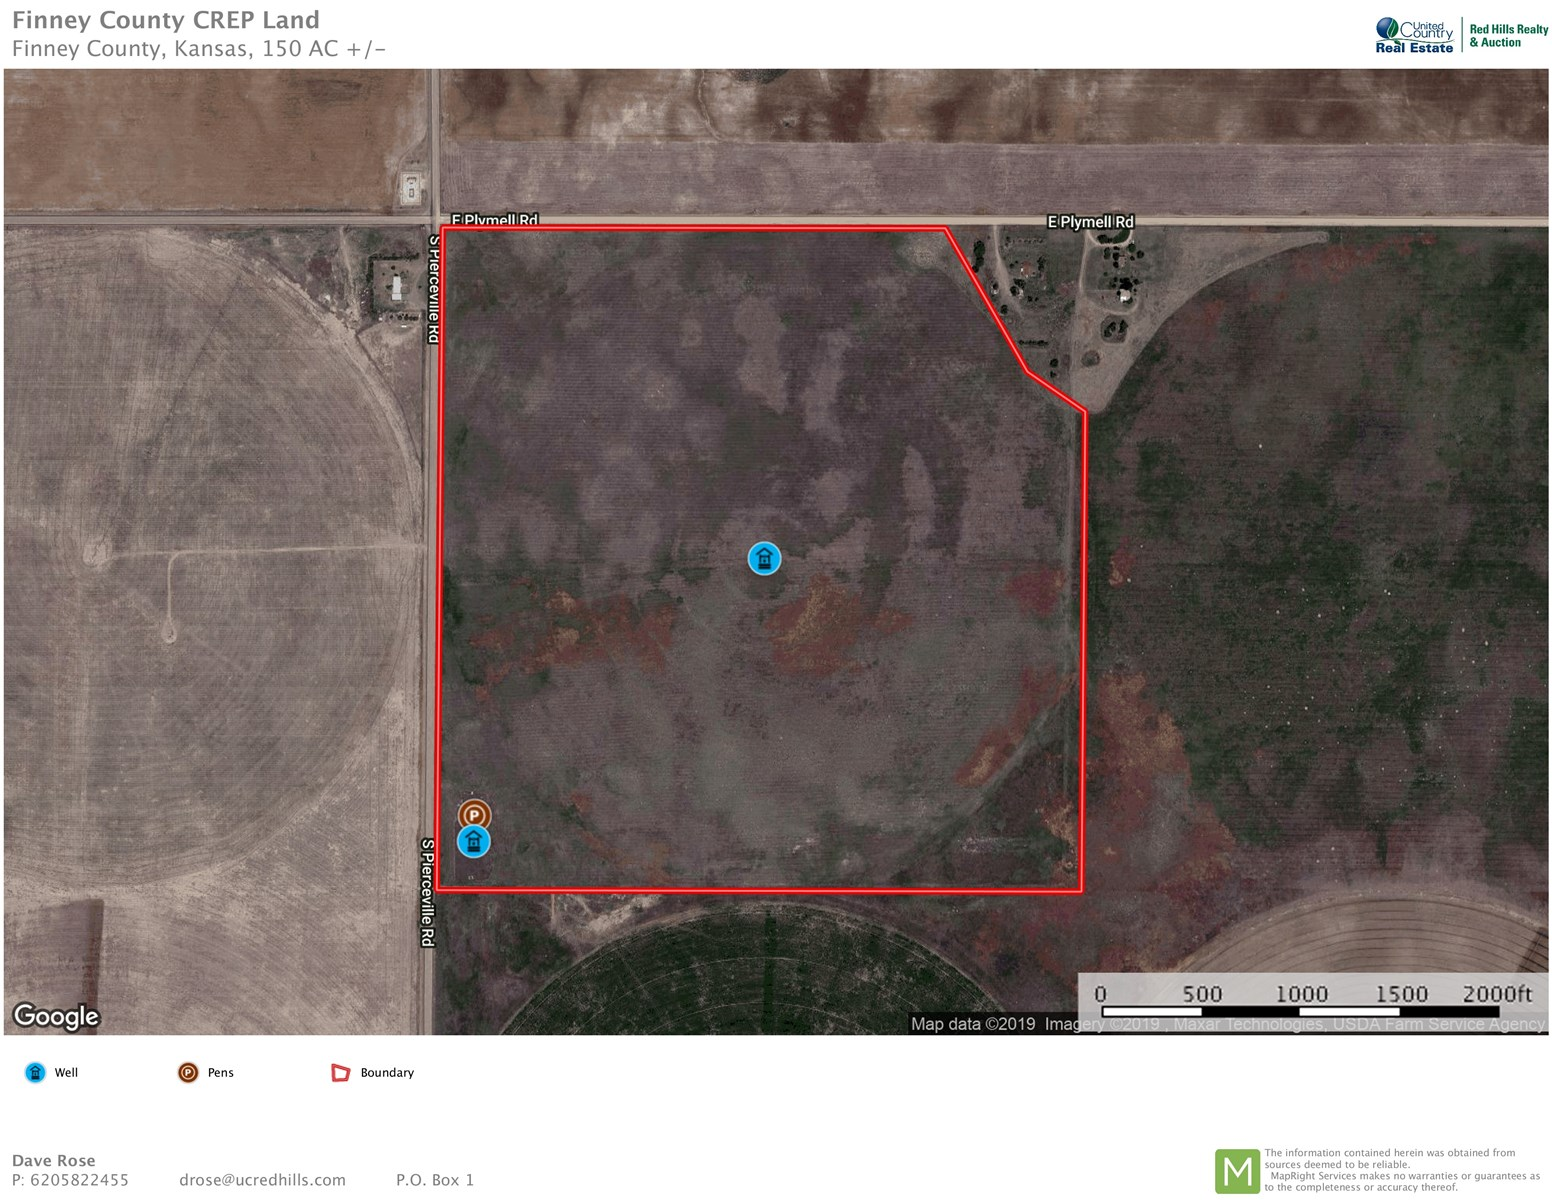 150 Acres of CREP, Hunting, Pasture, Crop Land in Kansas